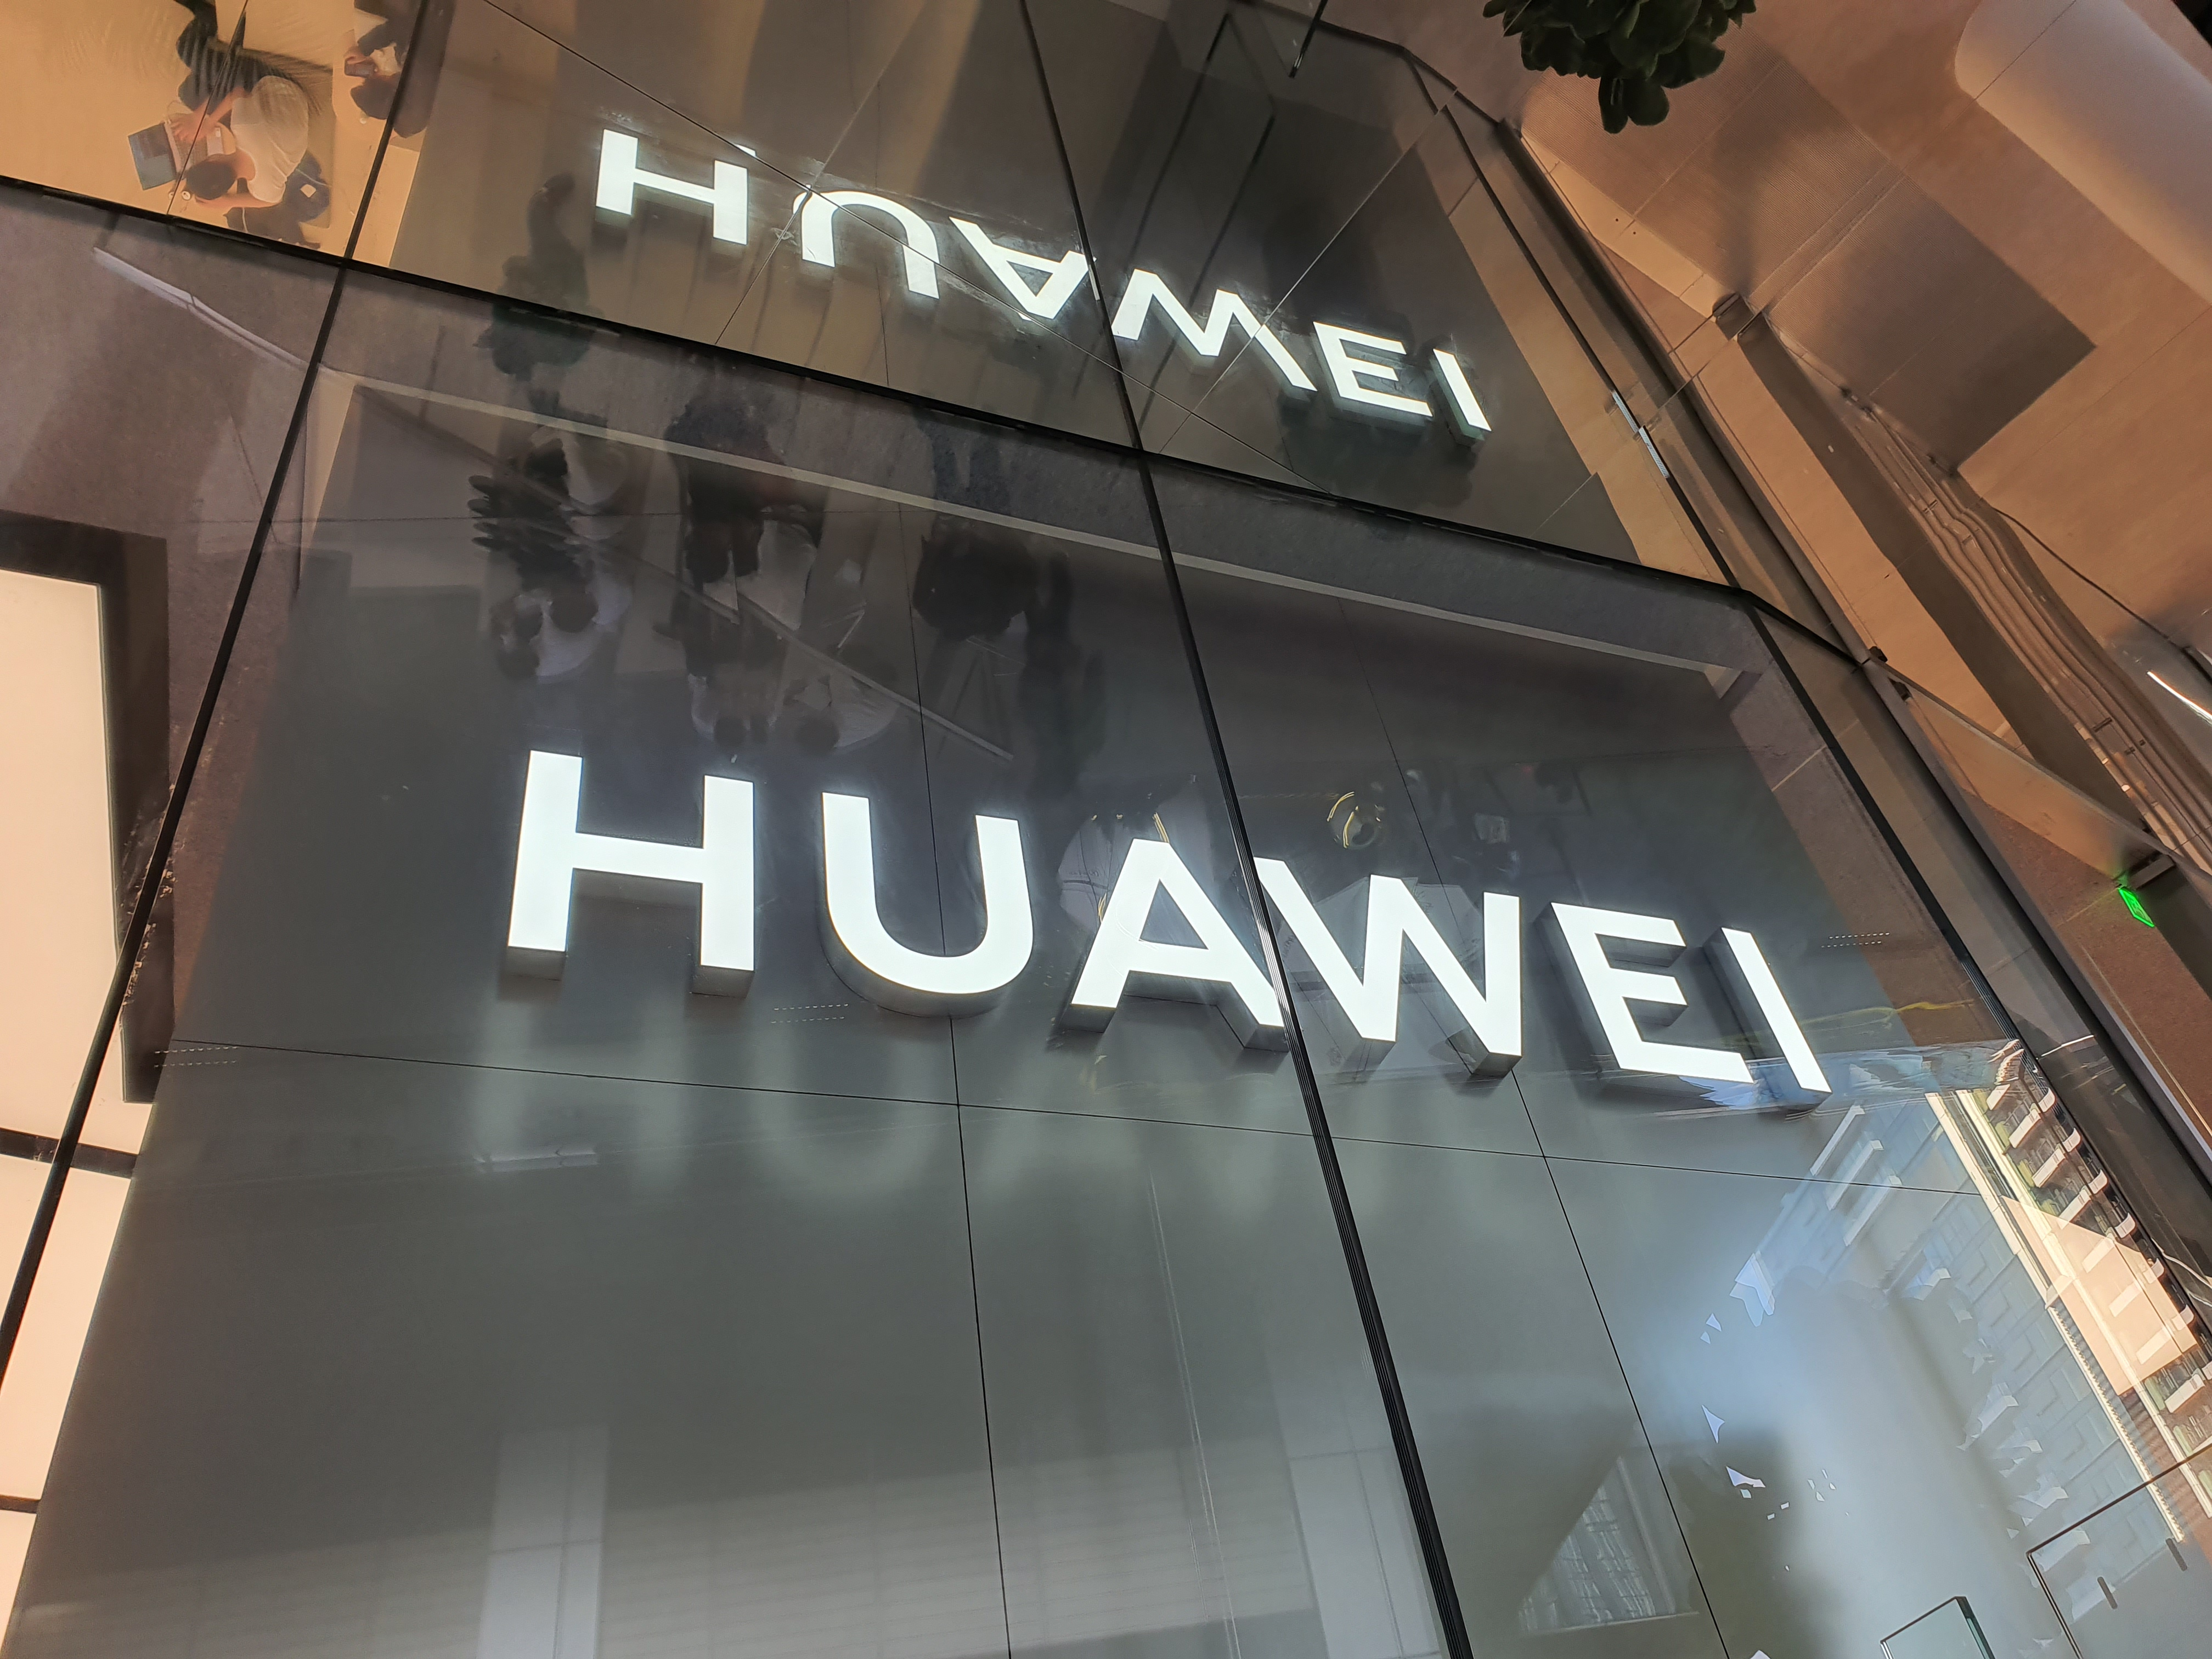 huawei logo - Huawei could also stop supplying chargers ... despite himself - Frandroid